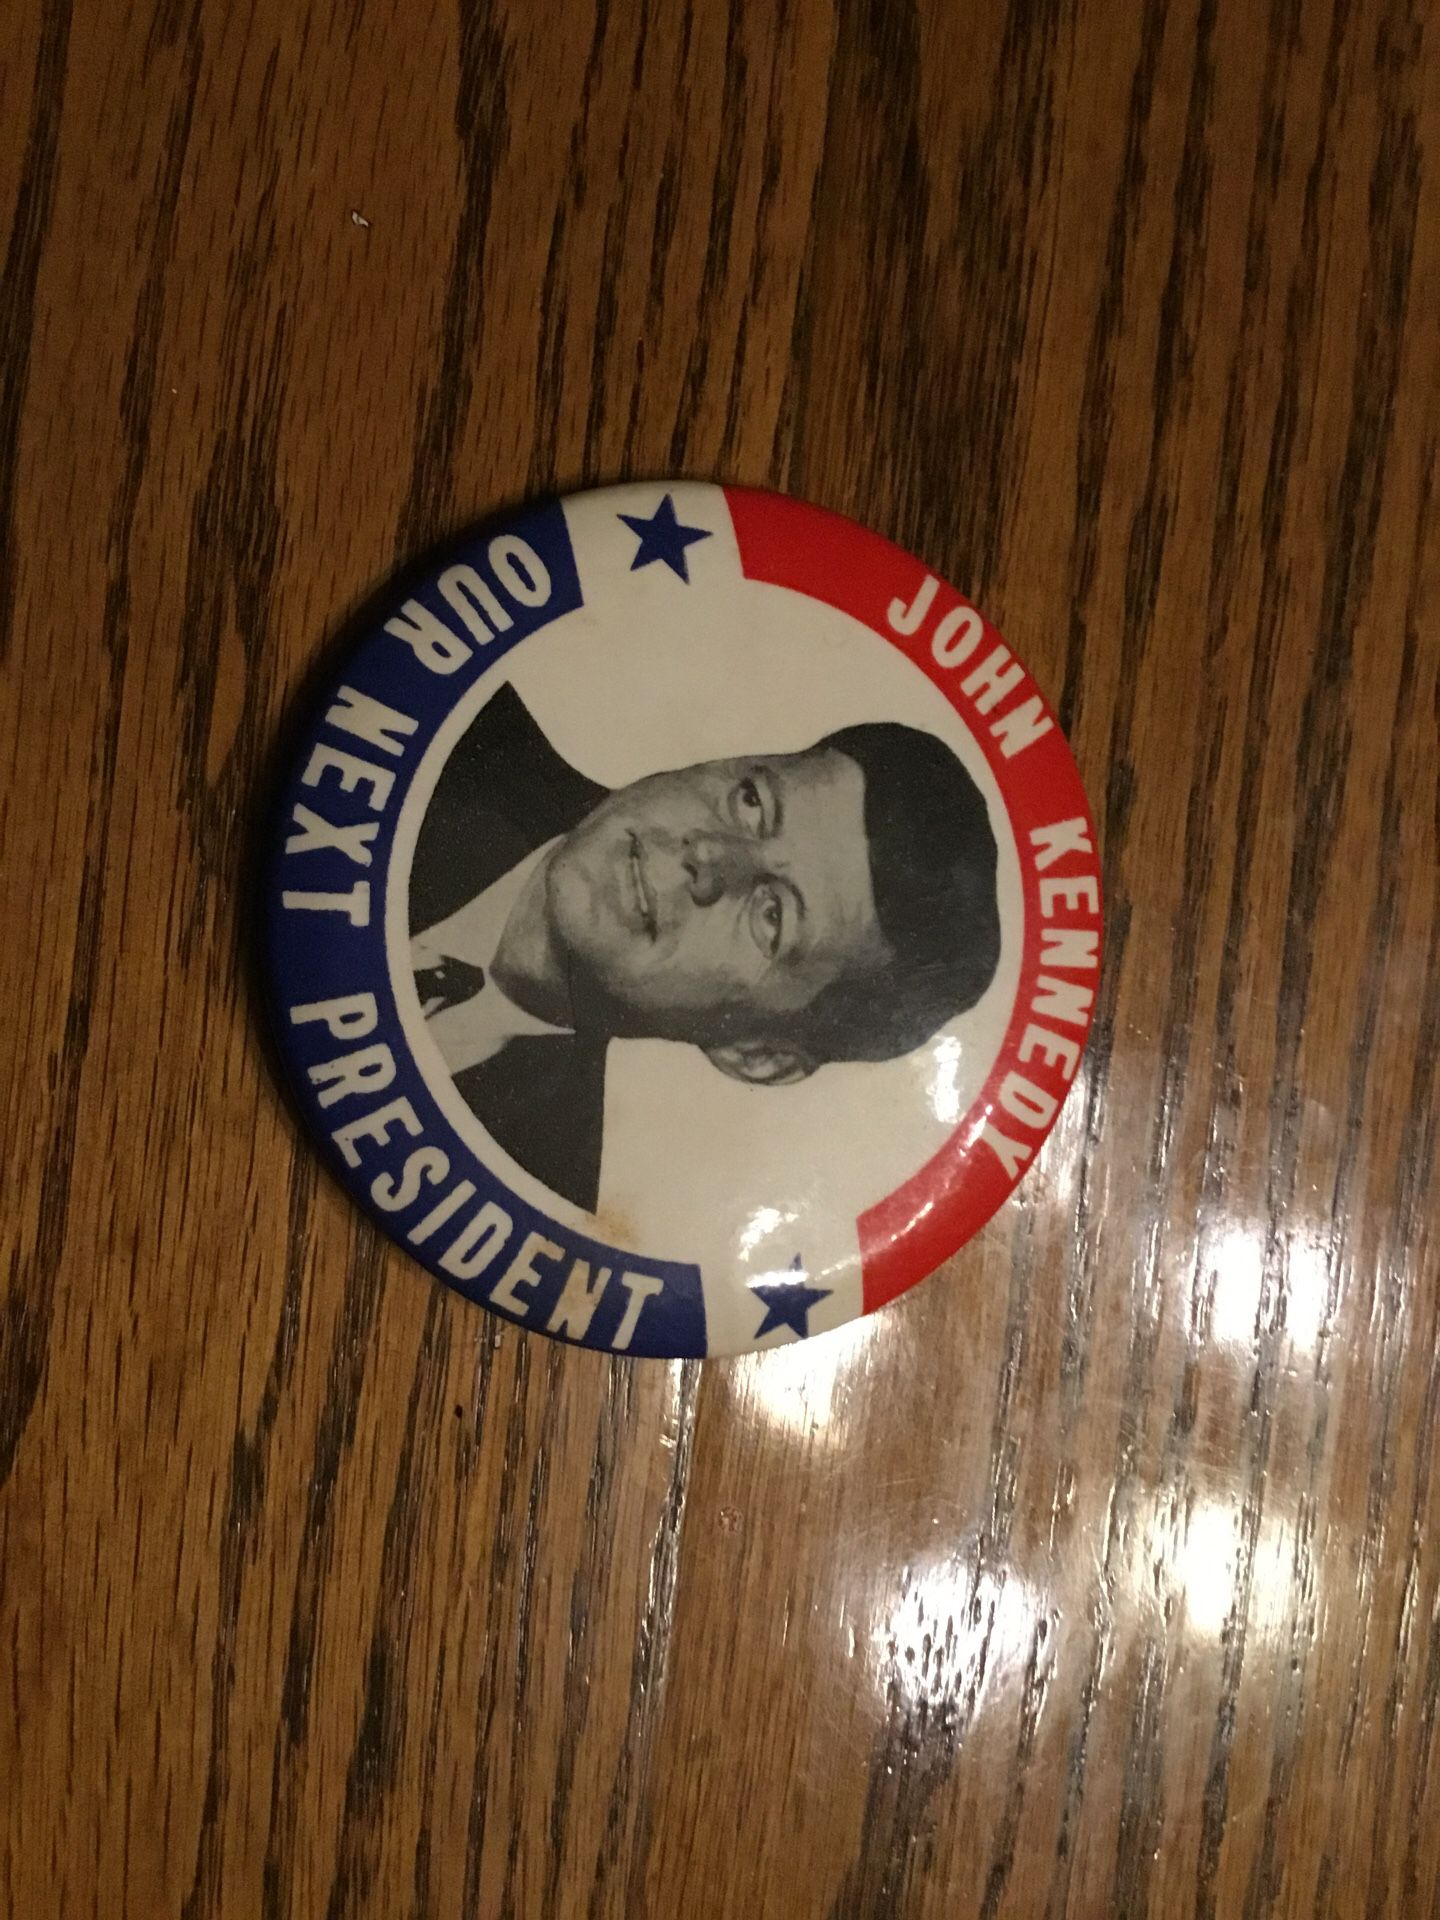 Authentic John Kennedy for President pin